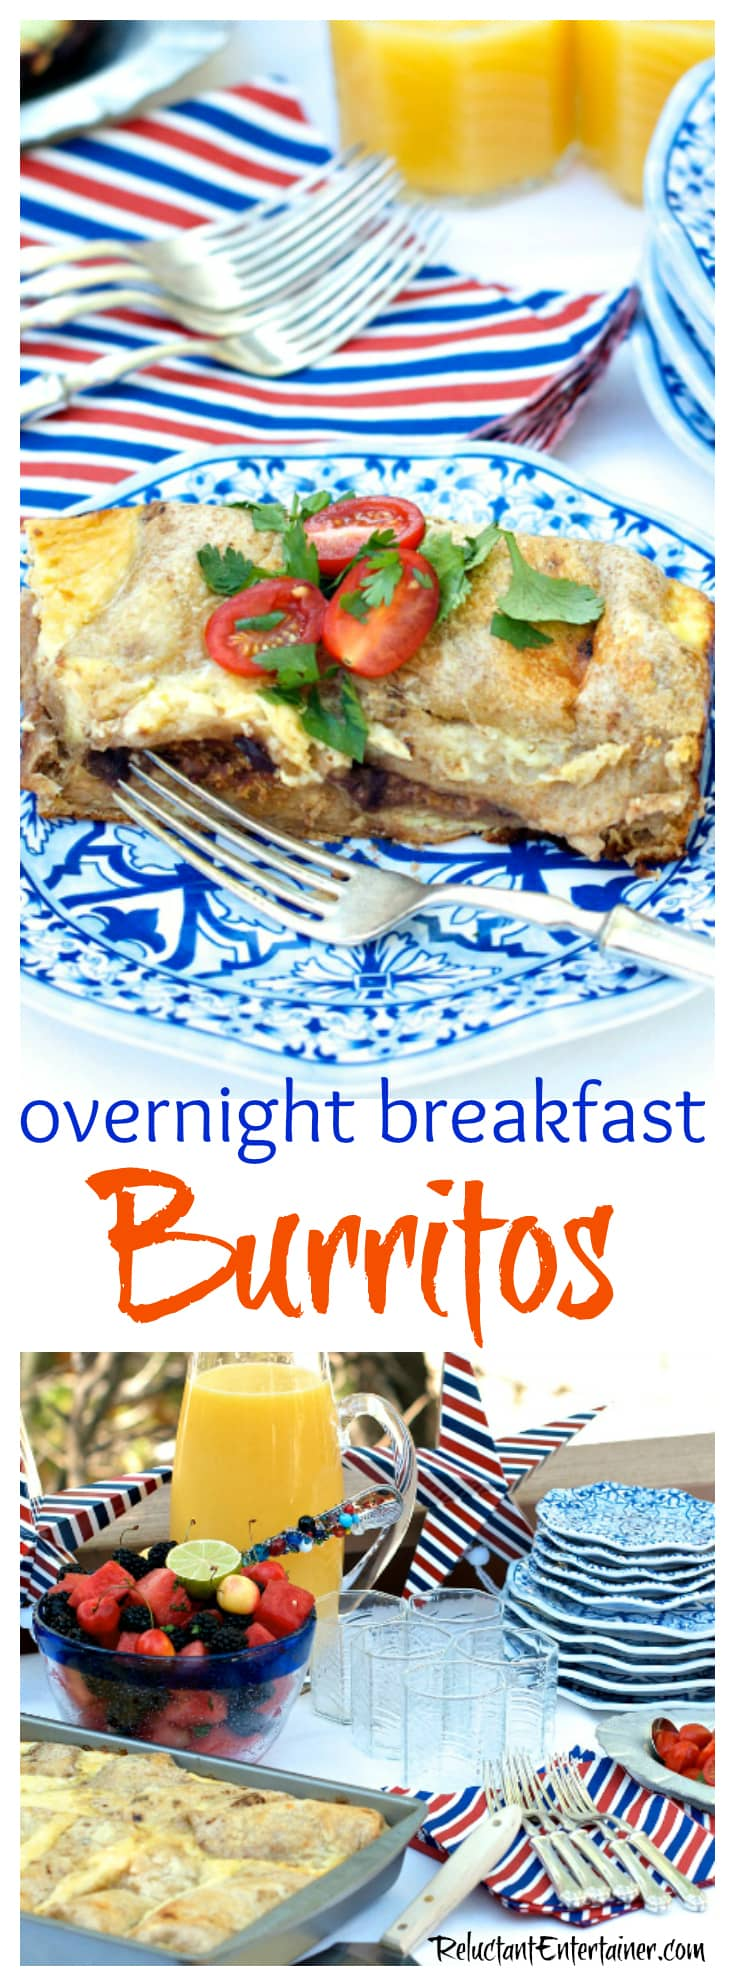 Overnight Breakfast Burritos made with black beans, eggs, peppers, onions, and cheese for your next breakfast, brunch, or holiday party!